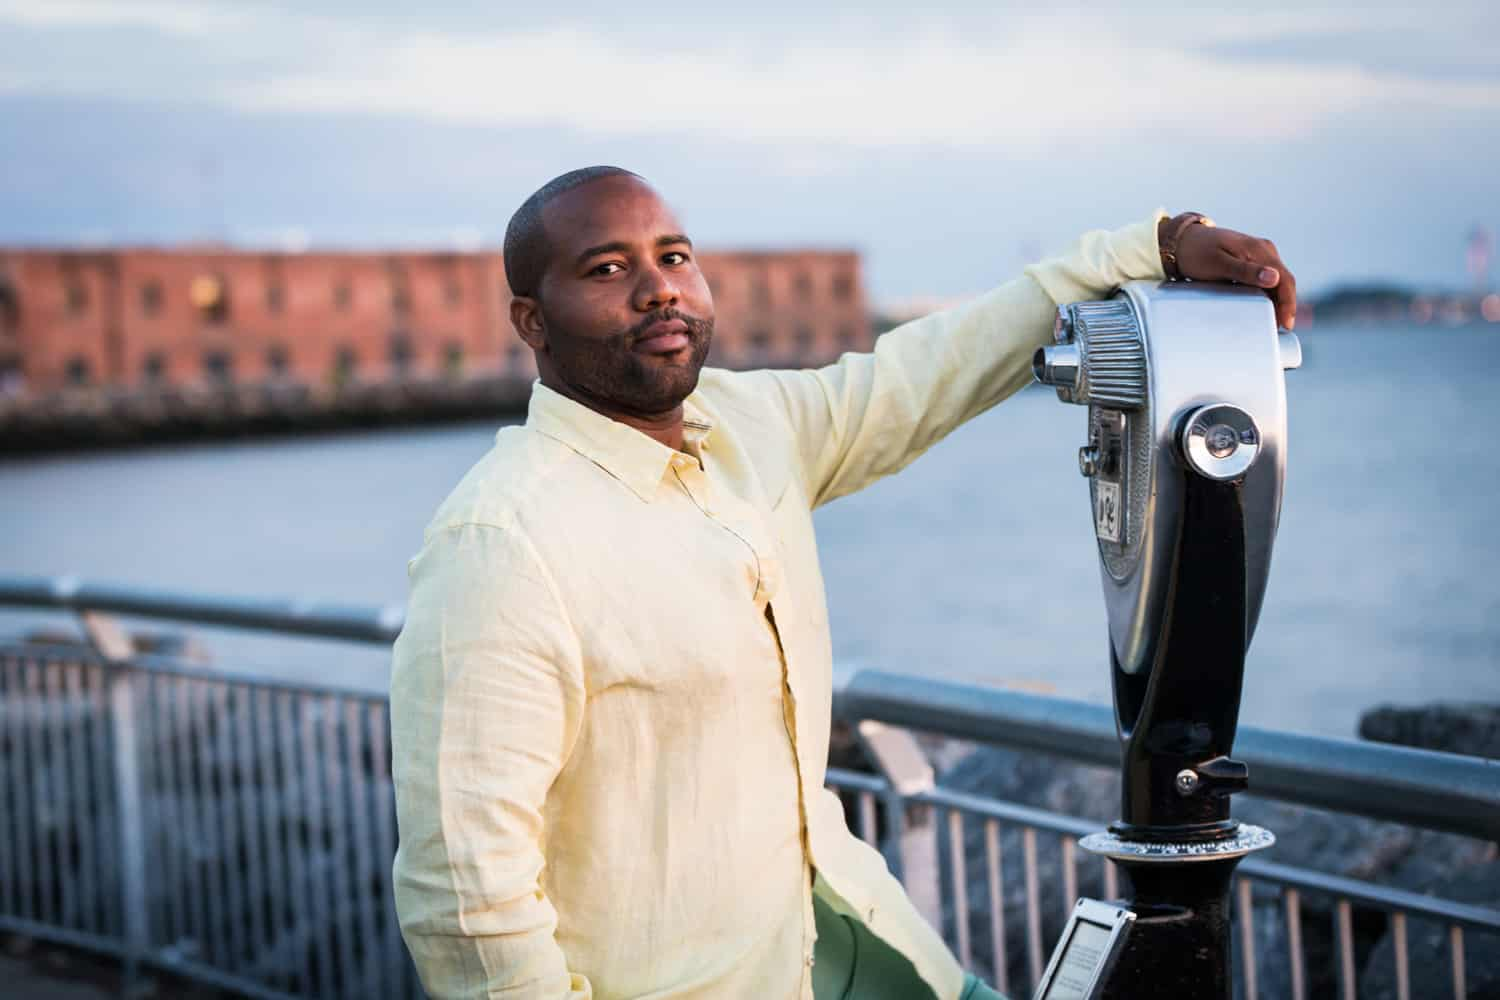 African American man standing in front of Red Hook waterfront with hand on view master